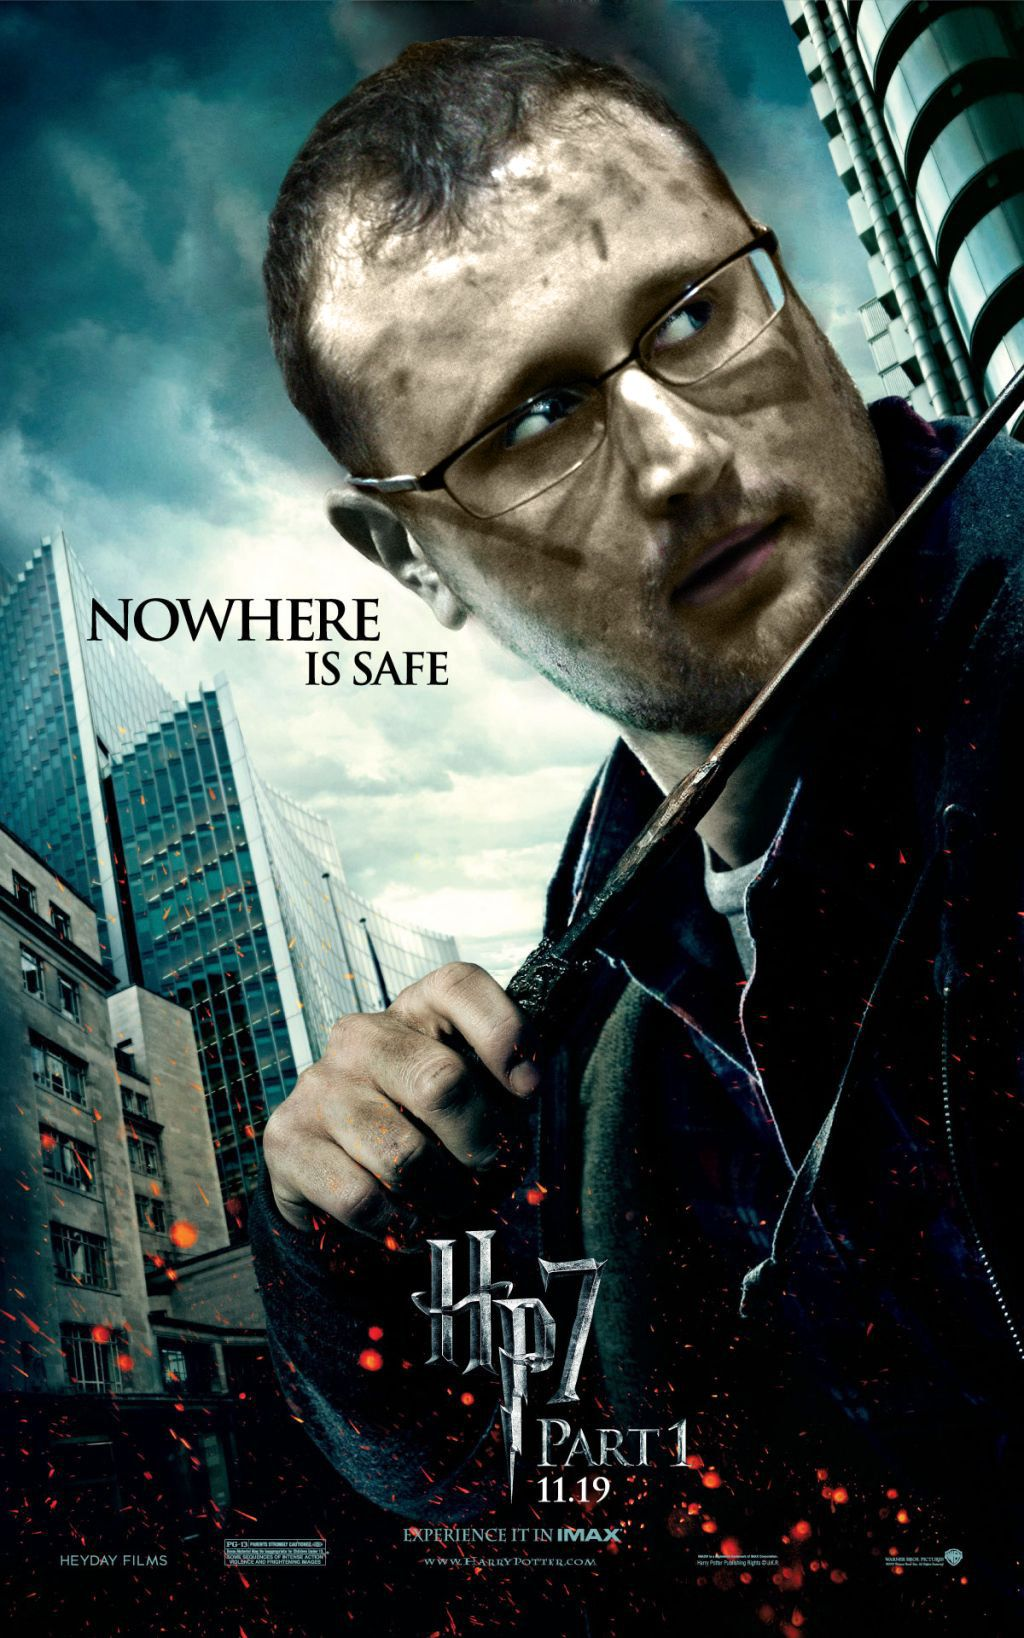 Nowhere is safe Harry potter movie posters